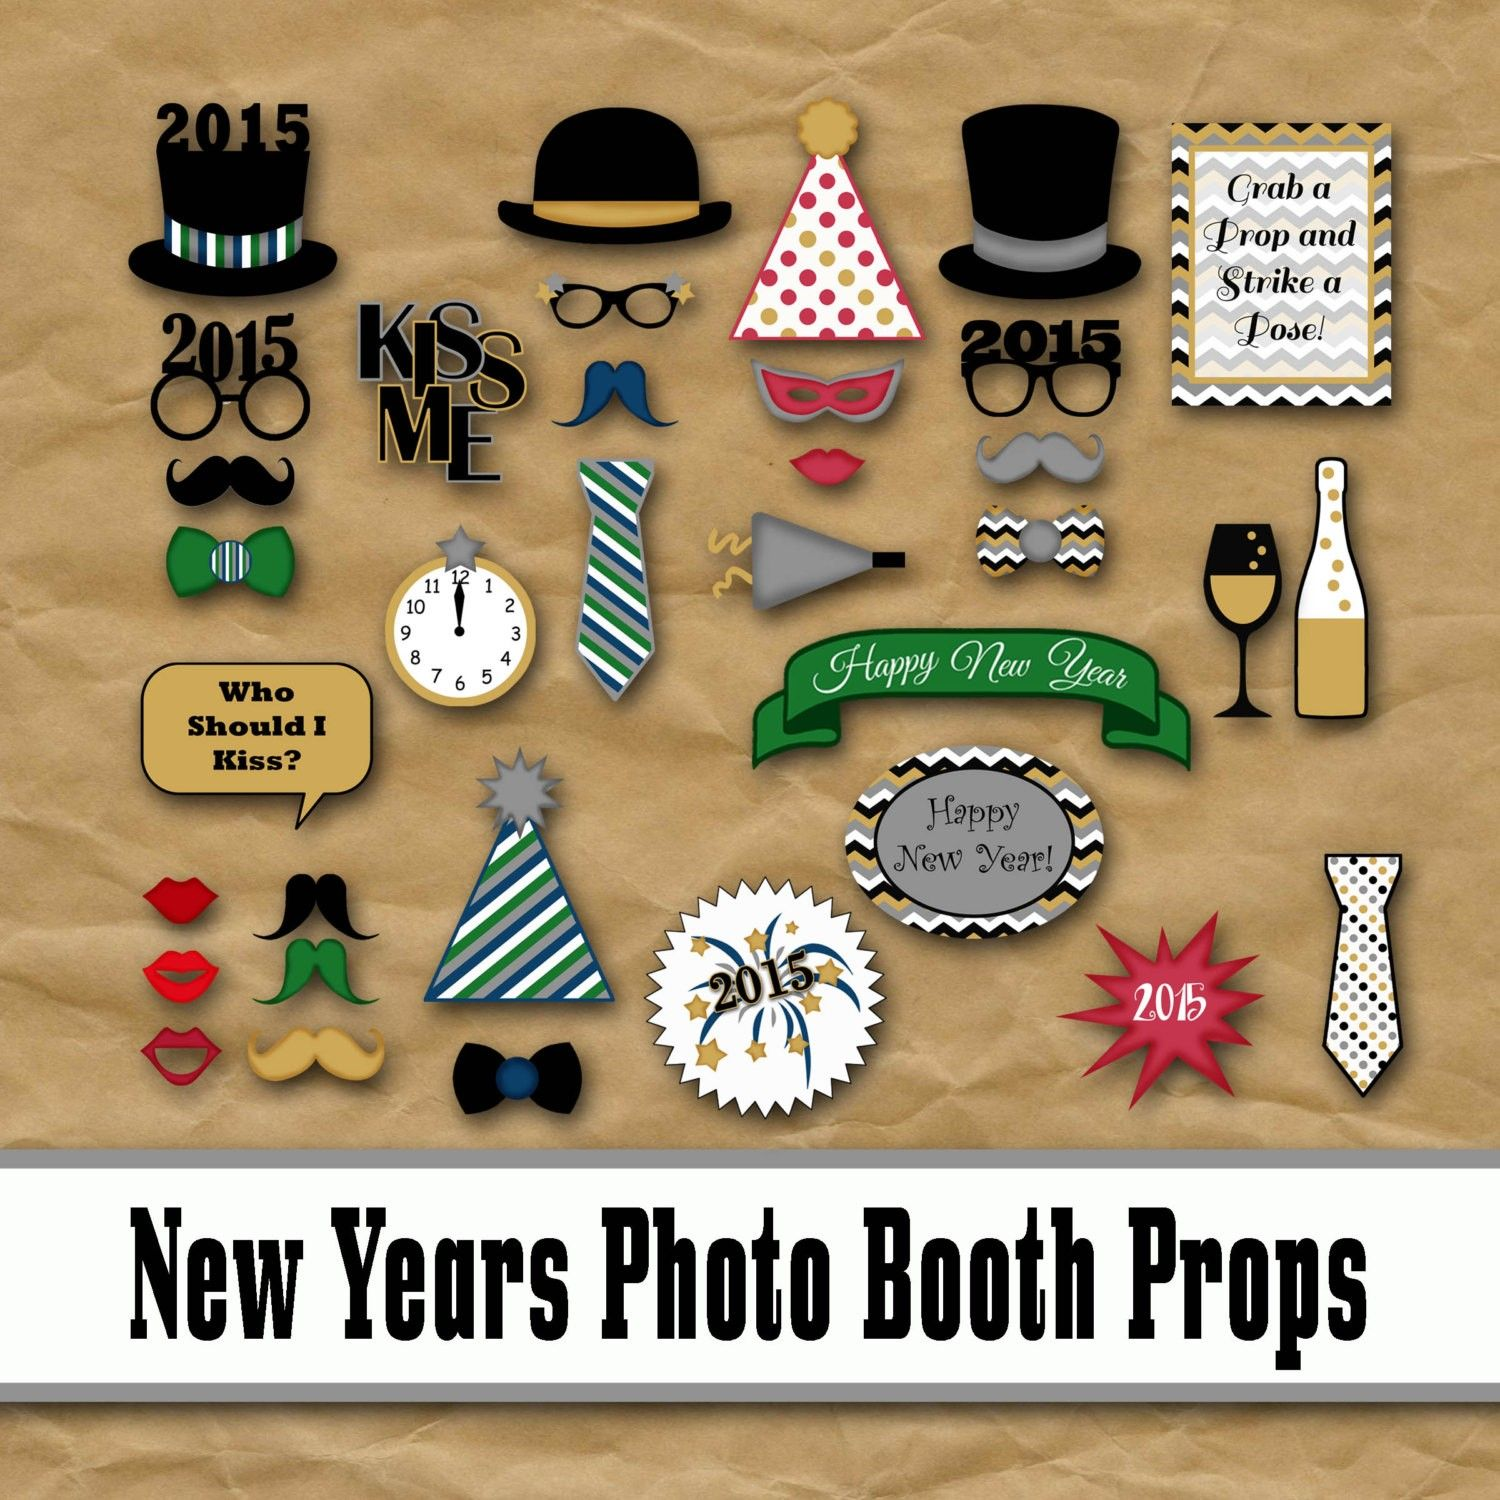 new years eve photo booth props 2015 printable 2015 new year ideas digital collage sheet digital download 2015 new year party